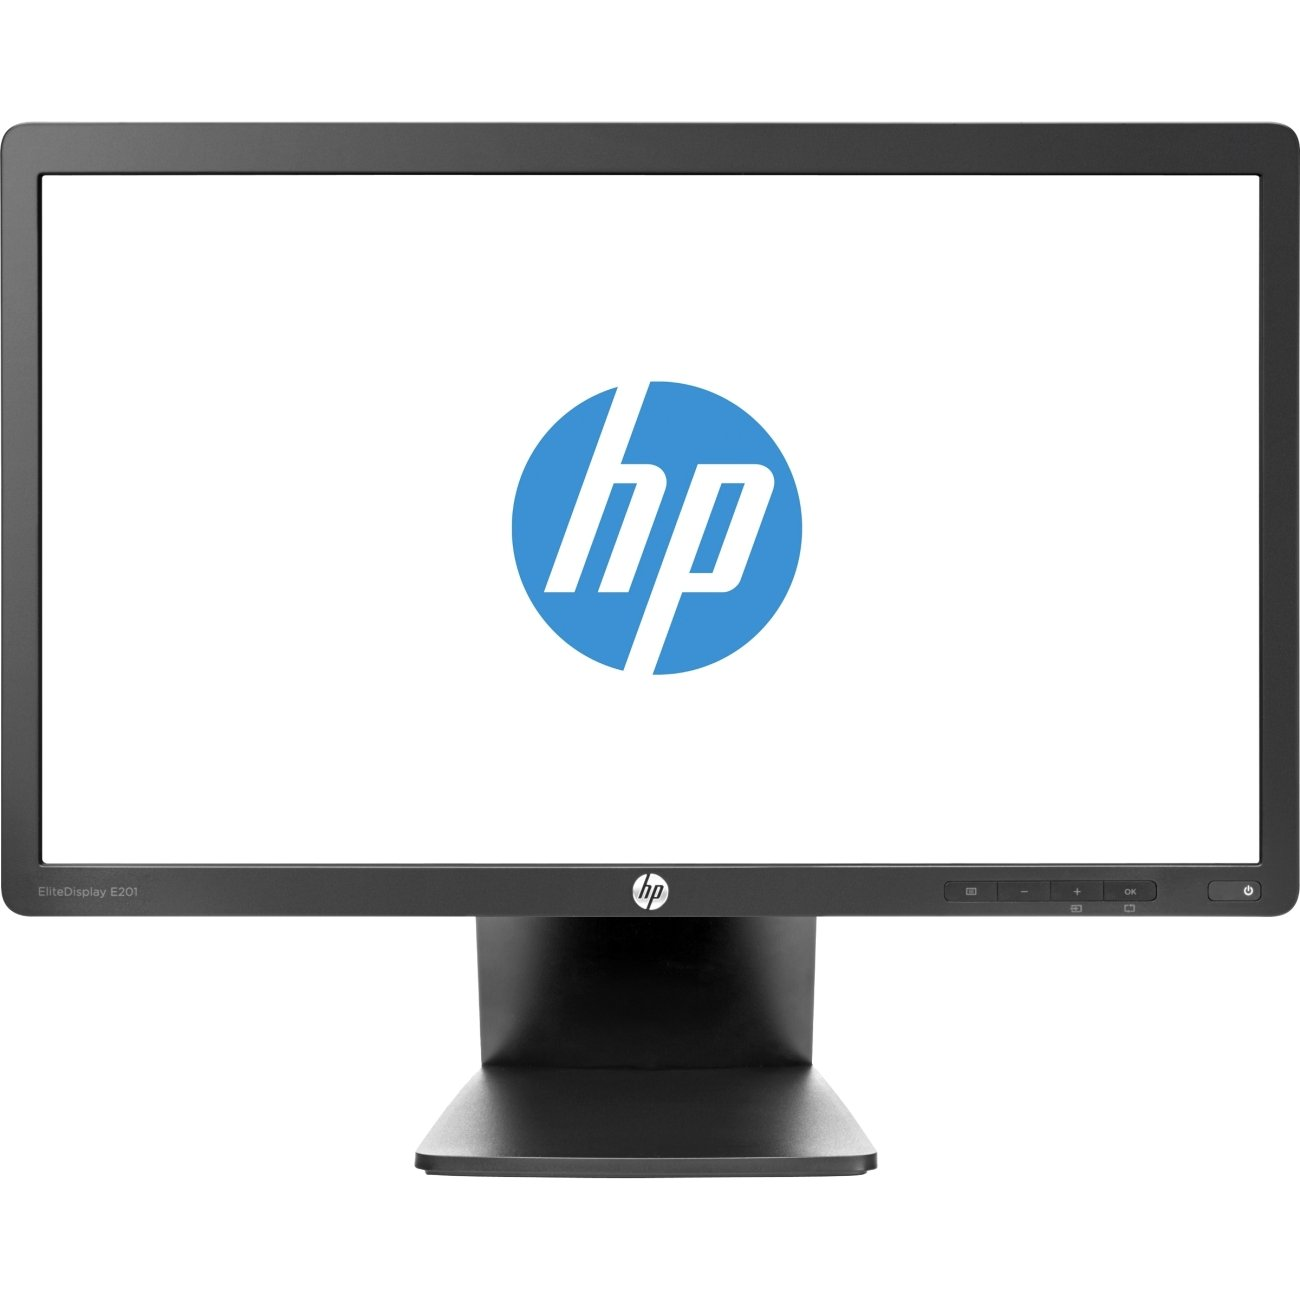 "HP C9V73AA 20"" 5MS 1600x900 VGA/DVI/DP PIVOT LED MONITOR"